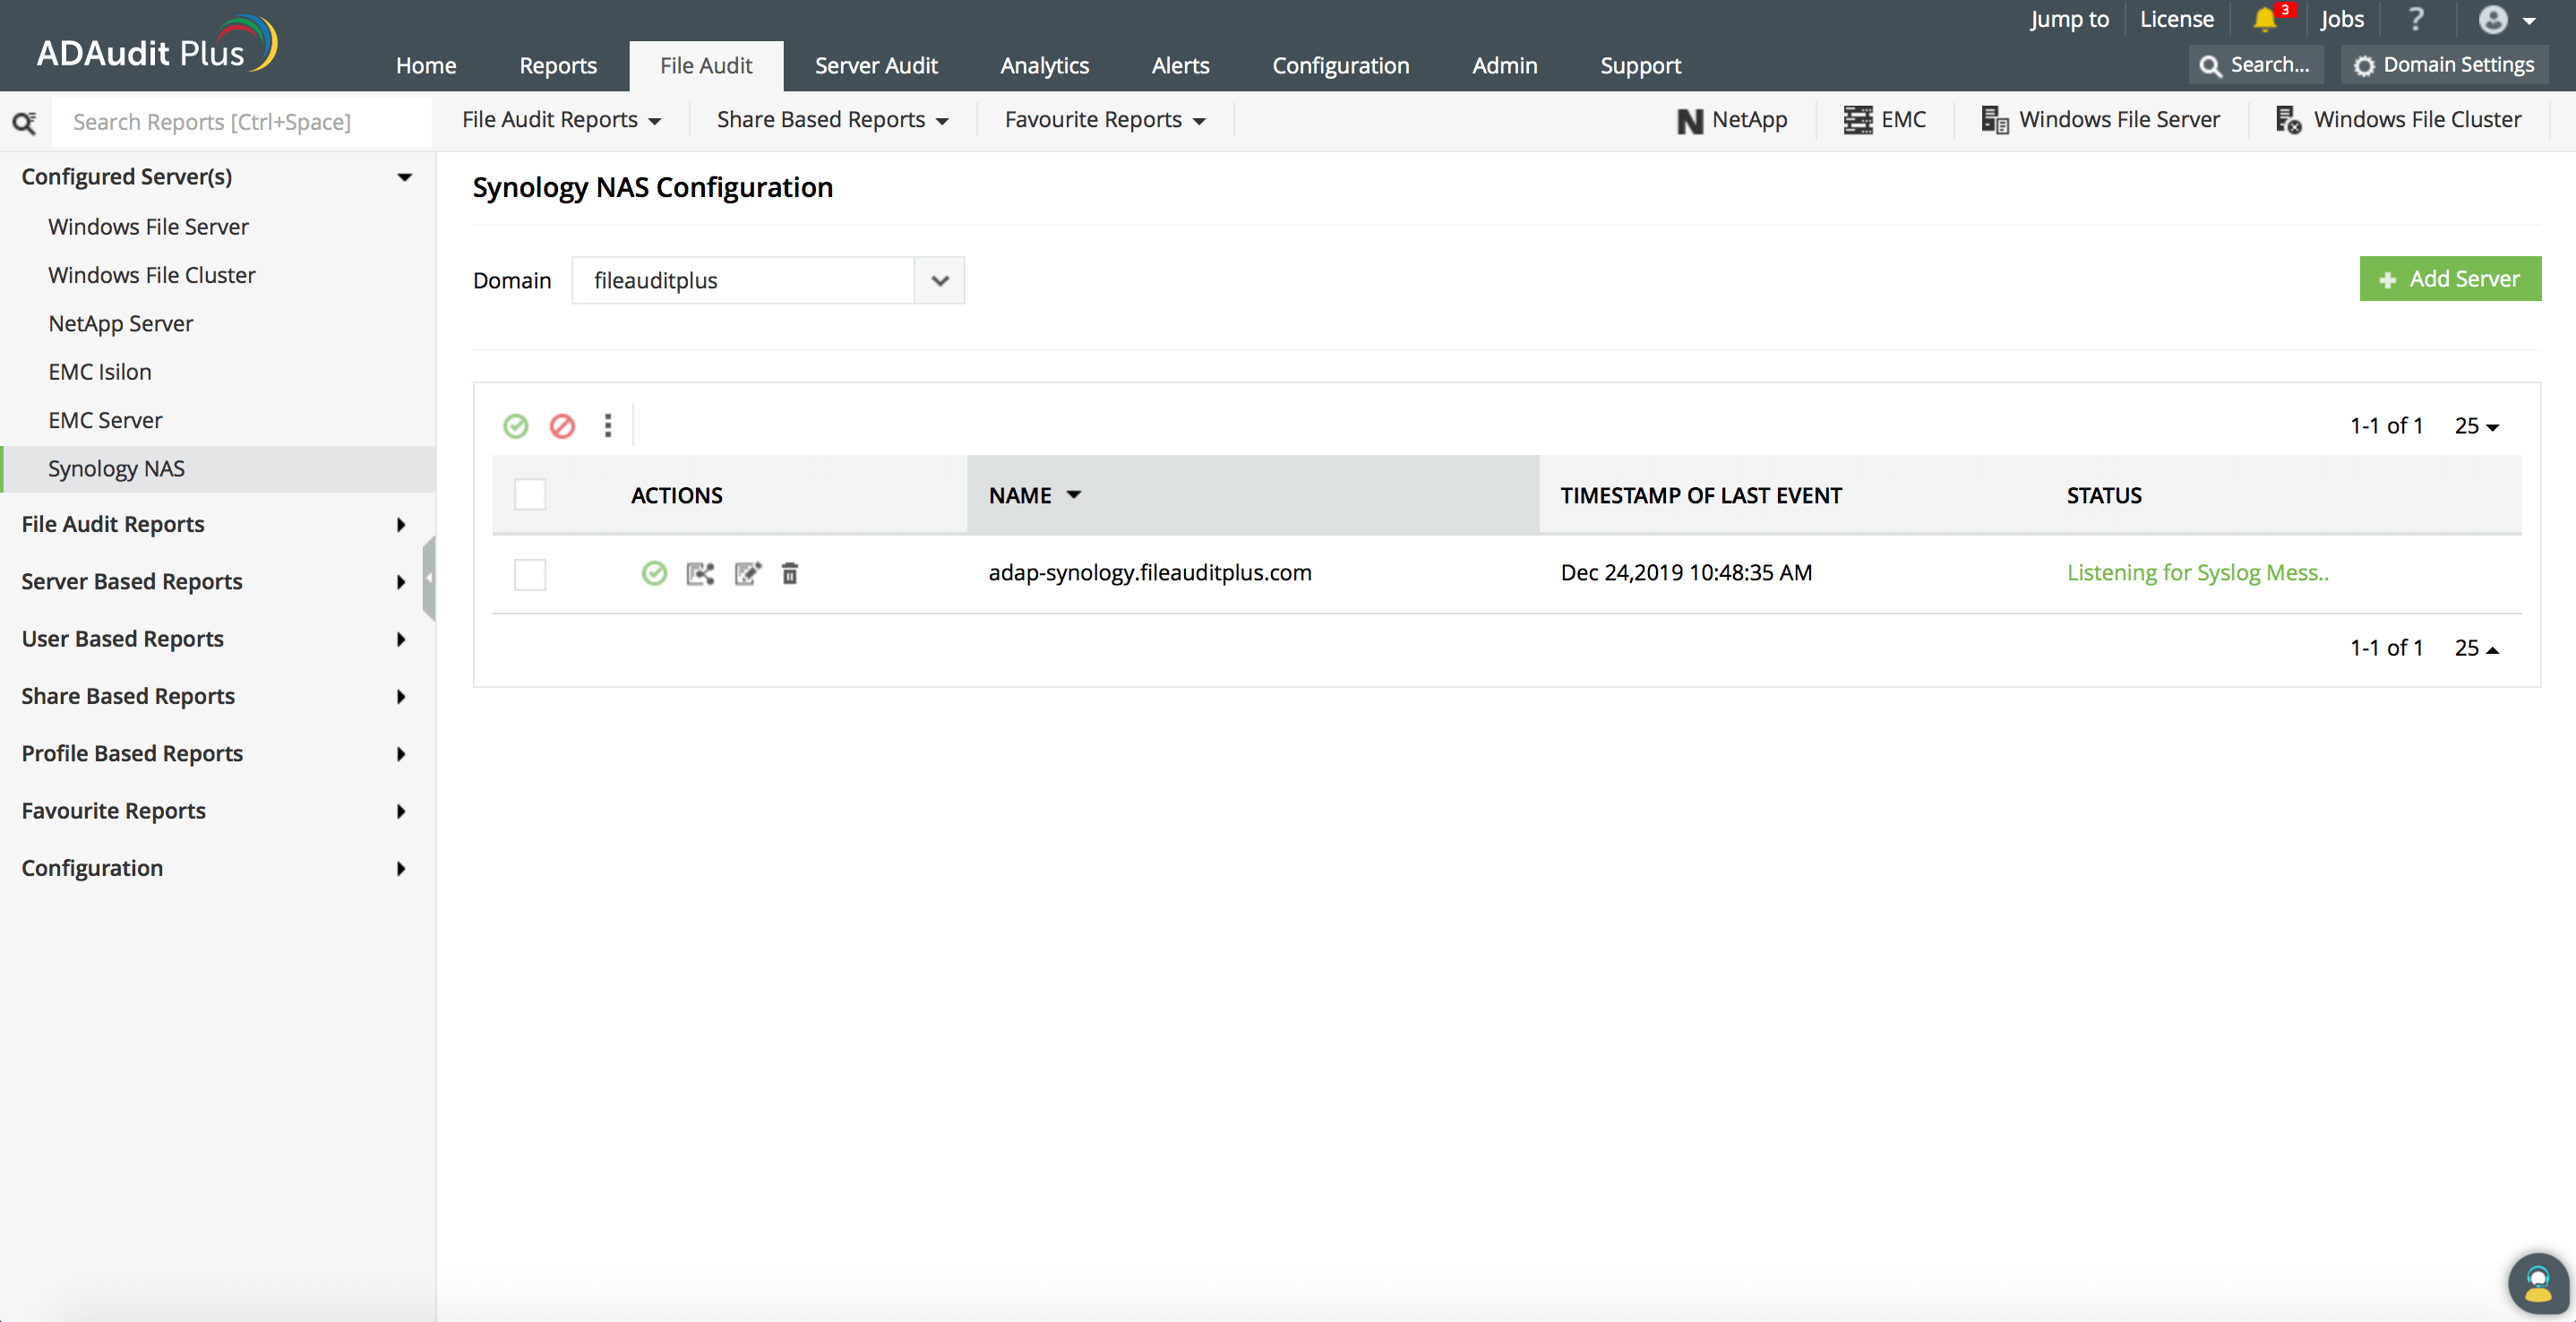 Synology NAS Configuration